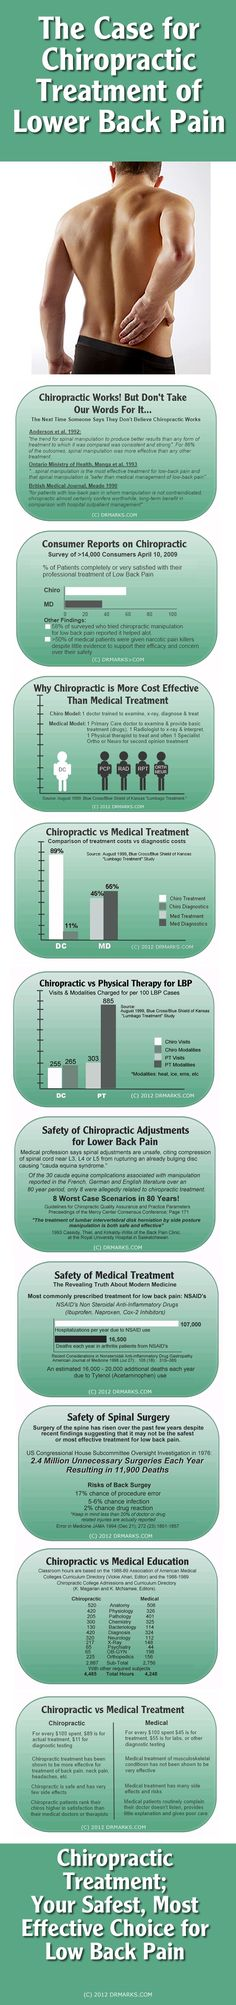 The Case for Chiropractic Treatment of Lower Back Pain - Infographic